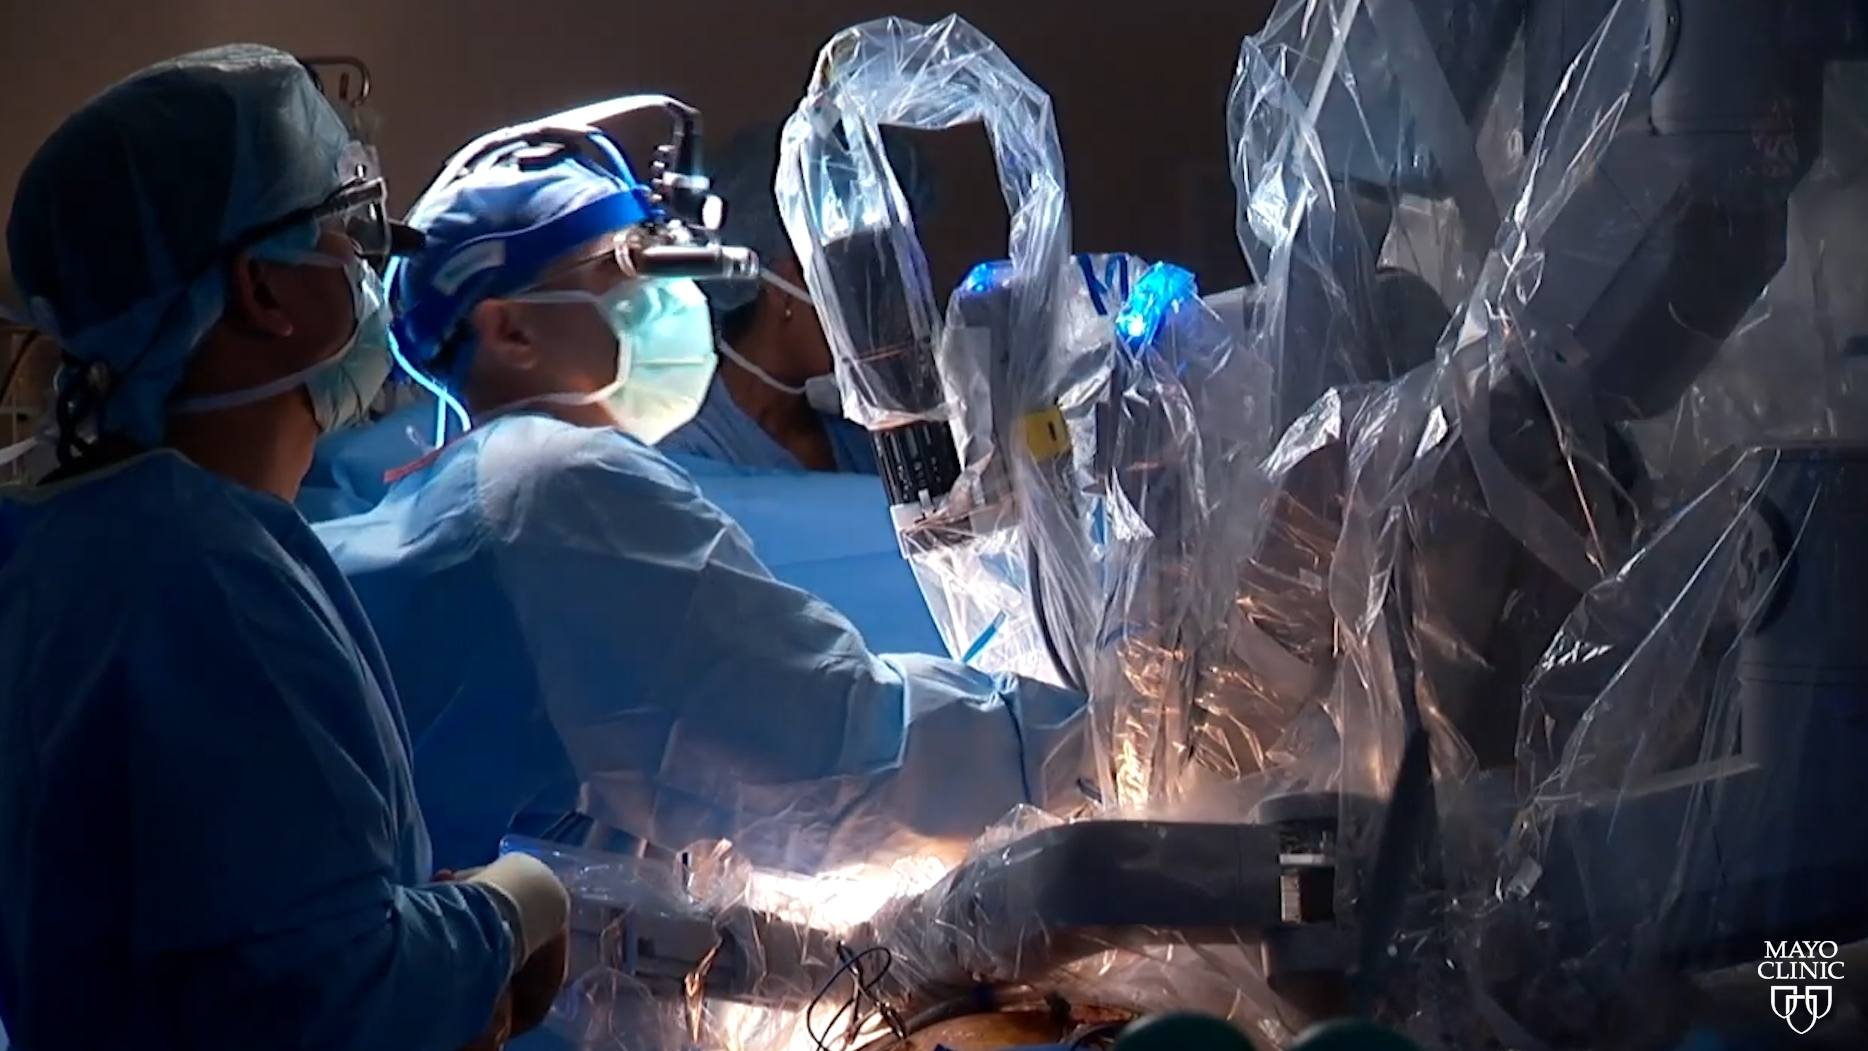 Mayo Clinic surgeons in the operating room performing robotic mitral valve surgery